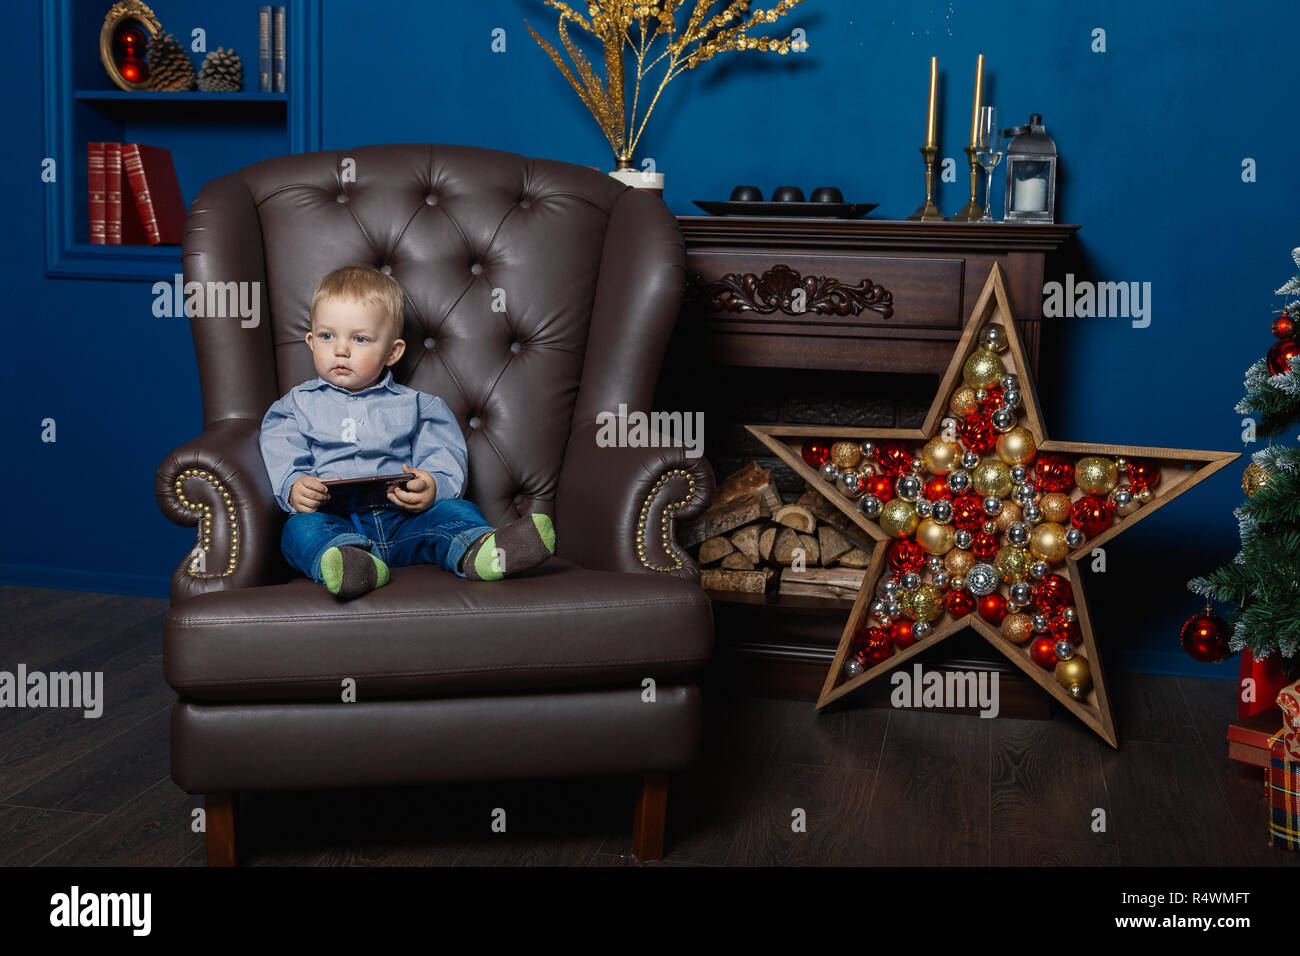 A little boy is sitting in an old leather chair with a phone - Stock Image